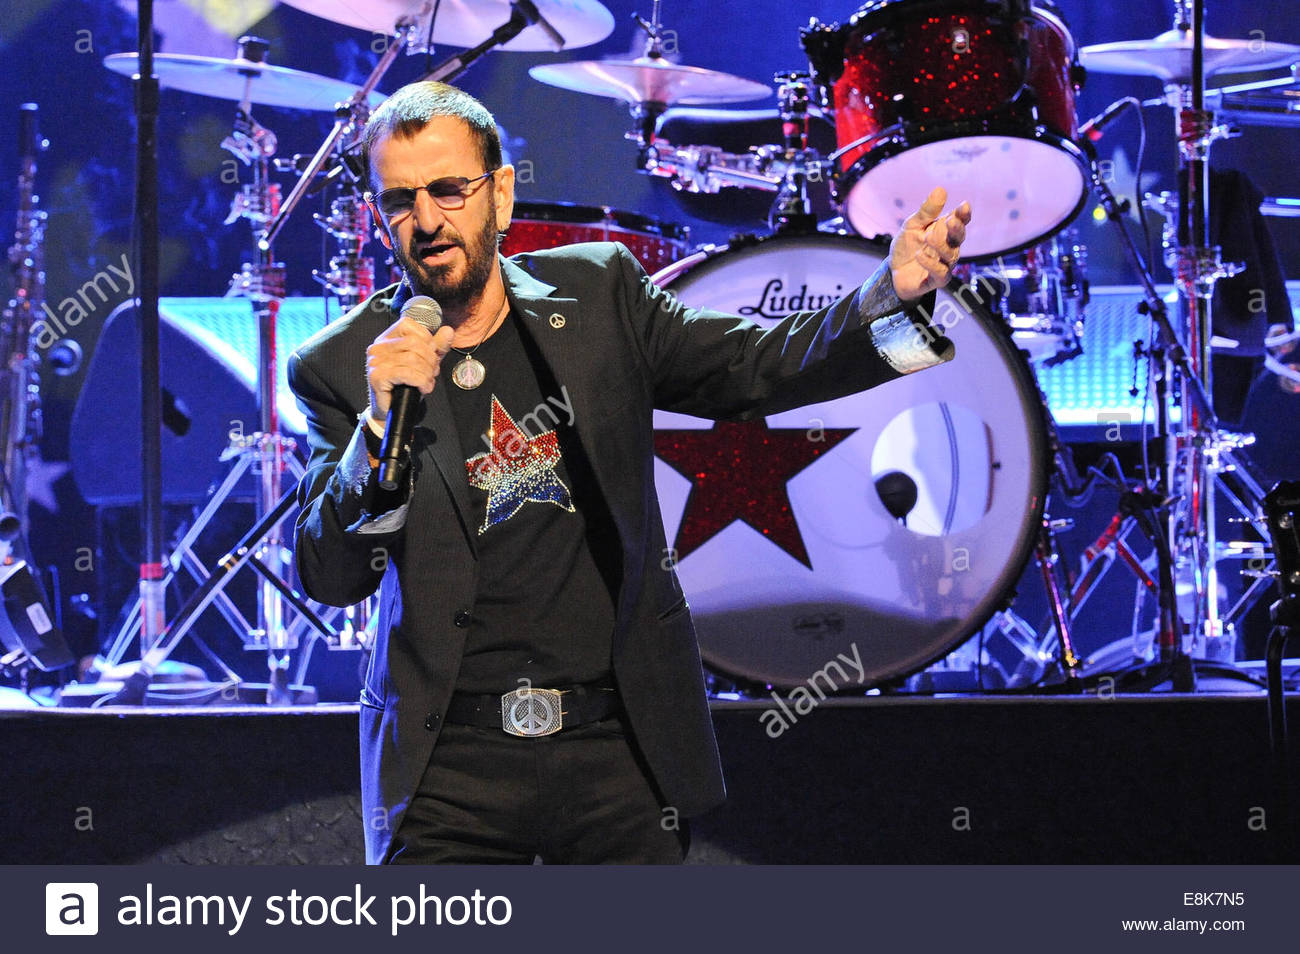 8th October 2014 Ringo Starr Performs In Concert At ACL